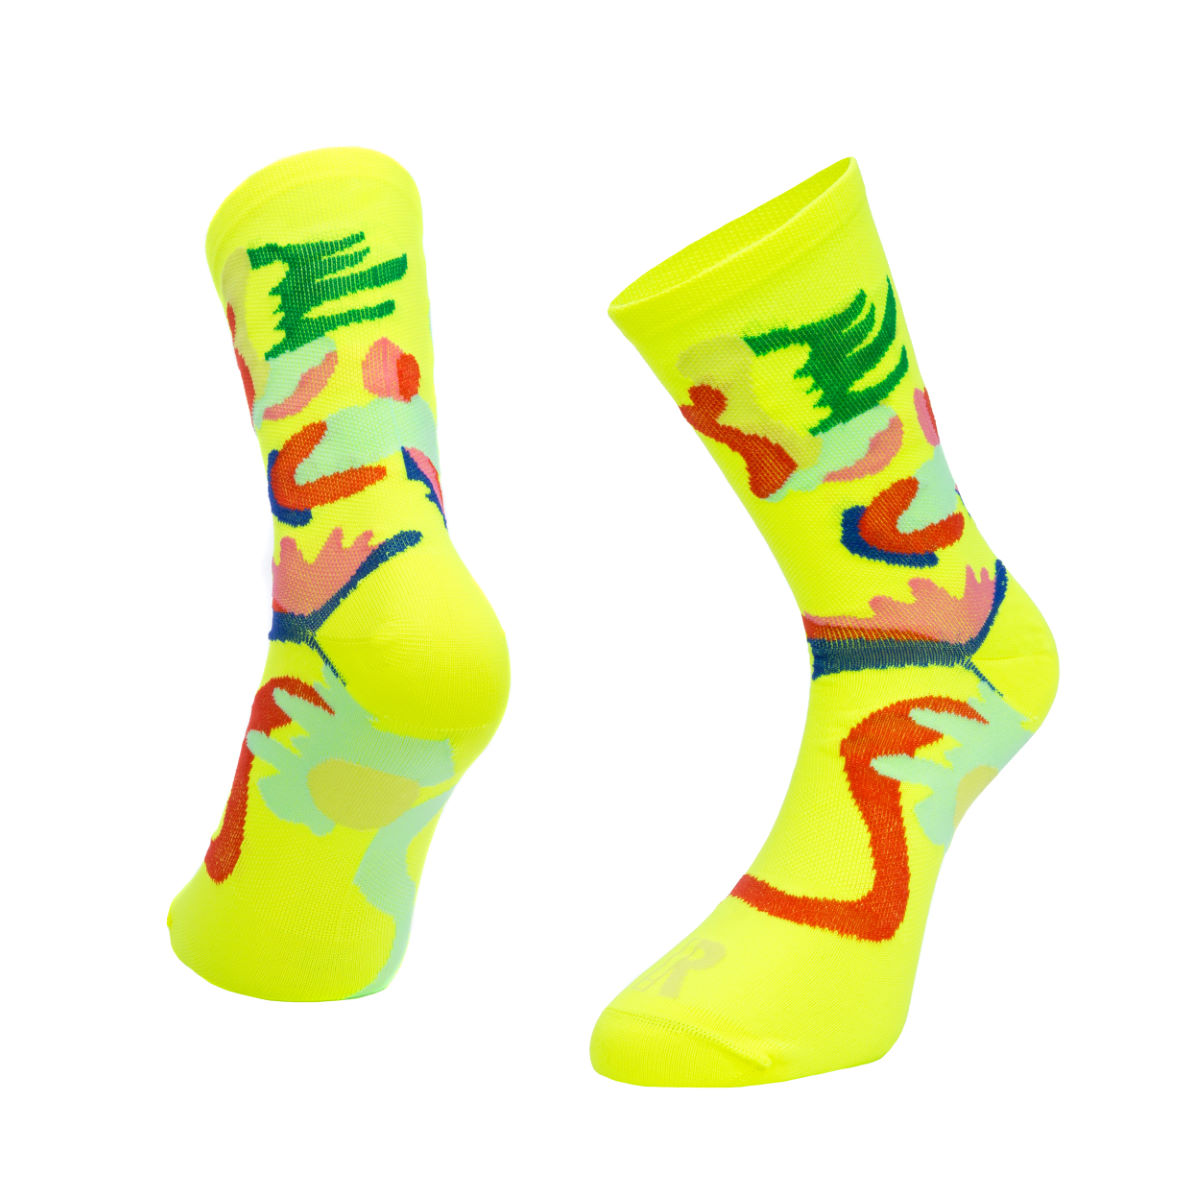 Ratio Floral 16cm Sock (Yellow) - Calcetines de ciclismo